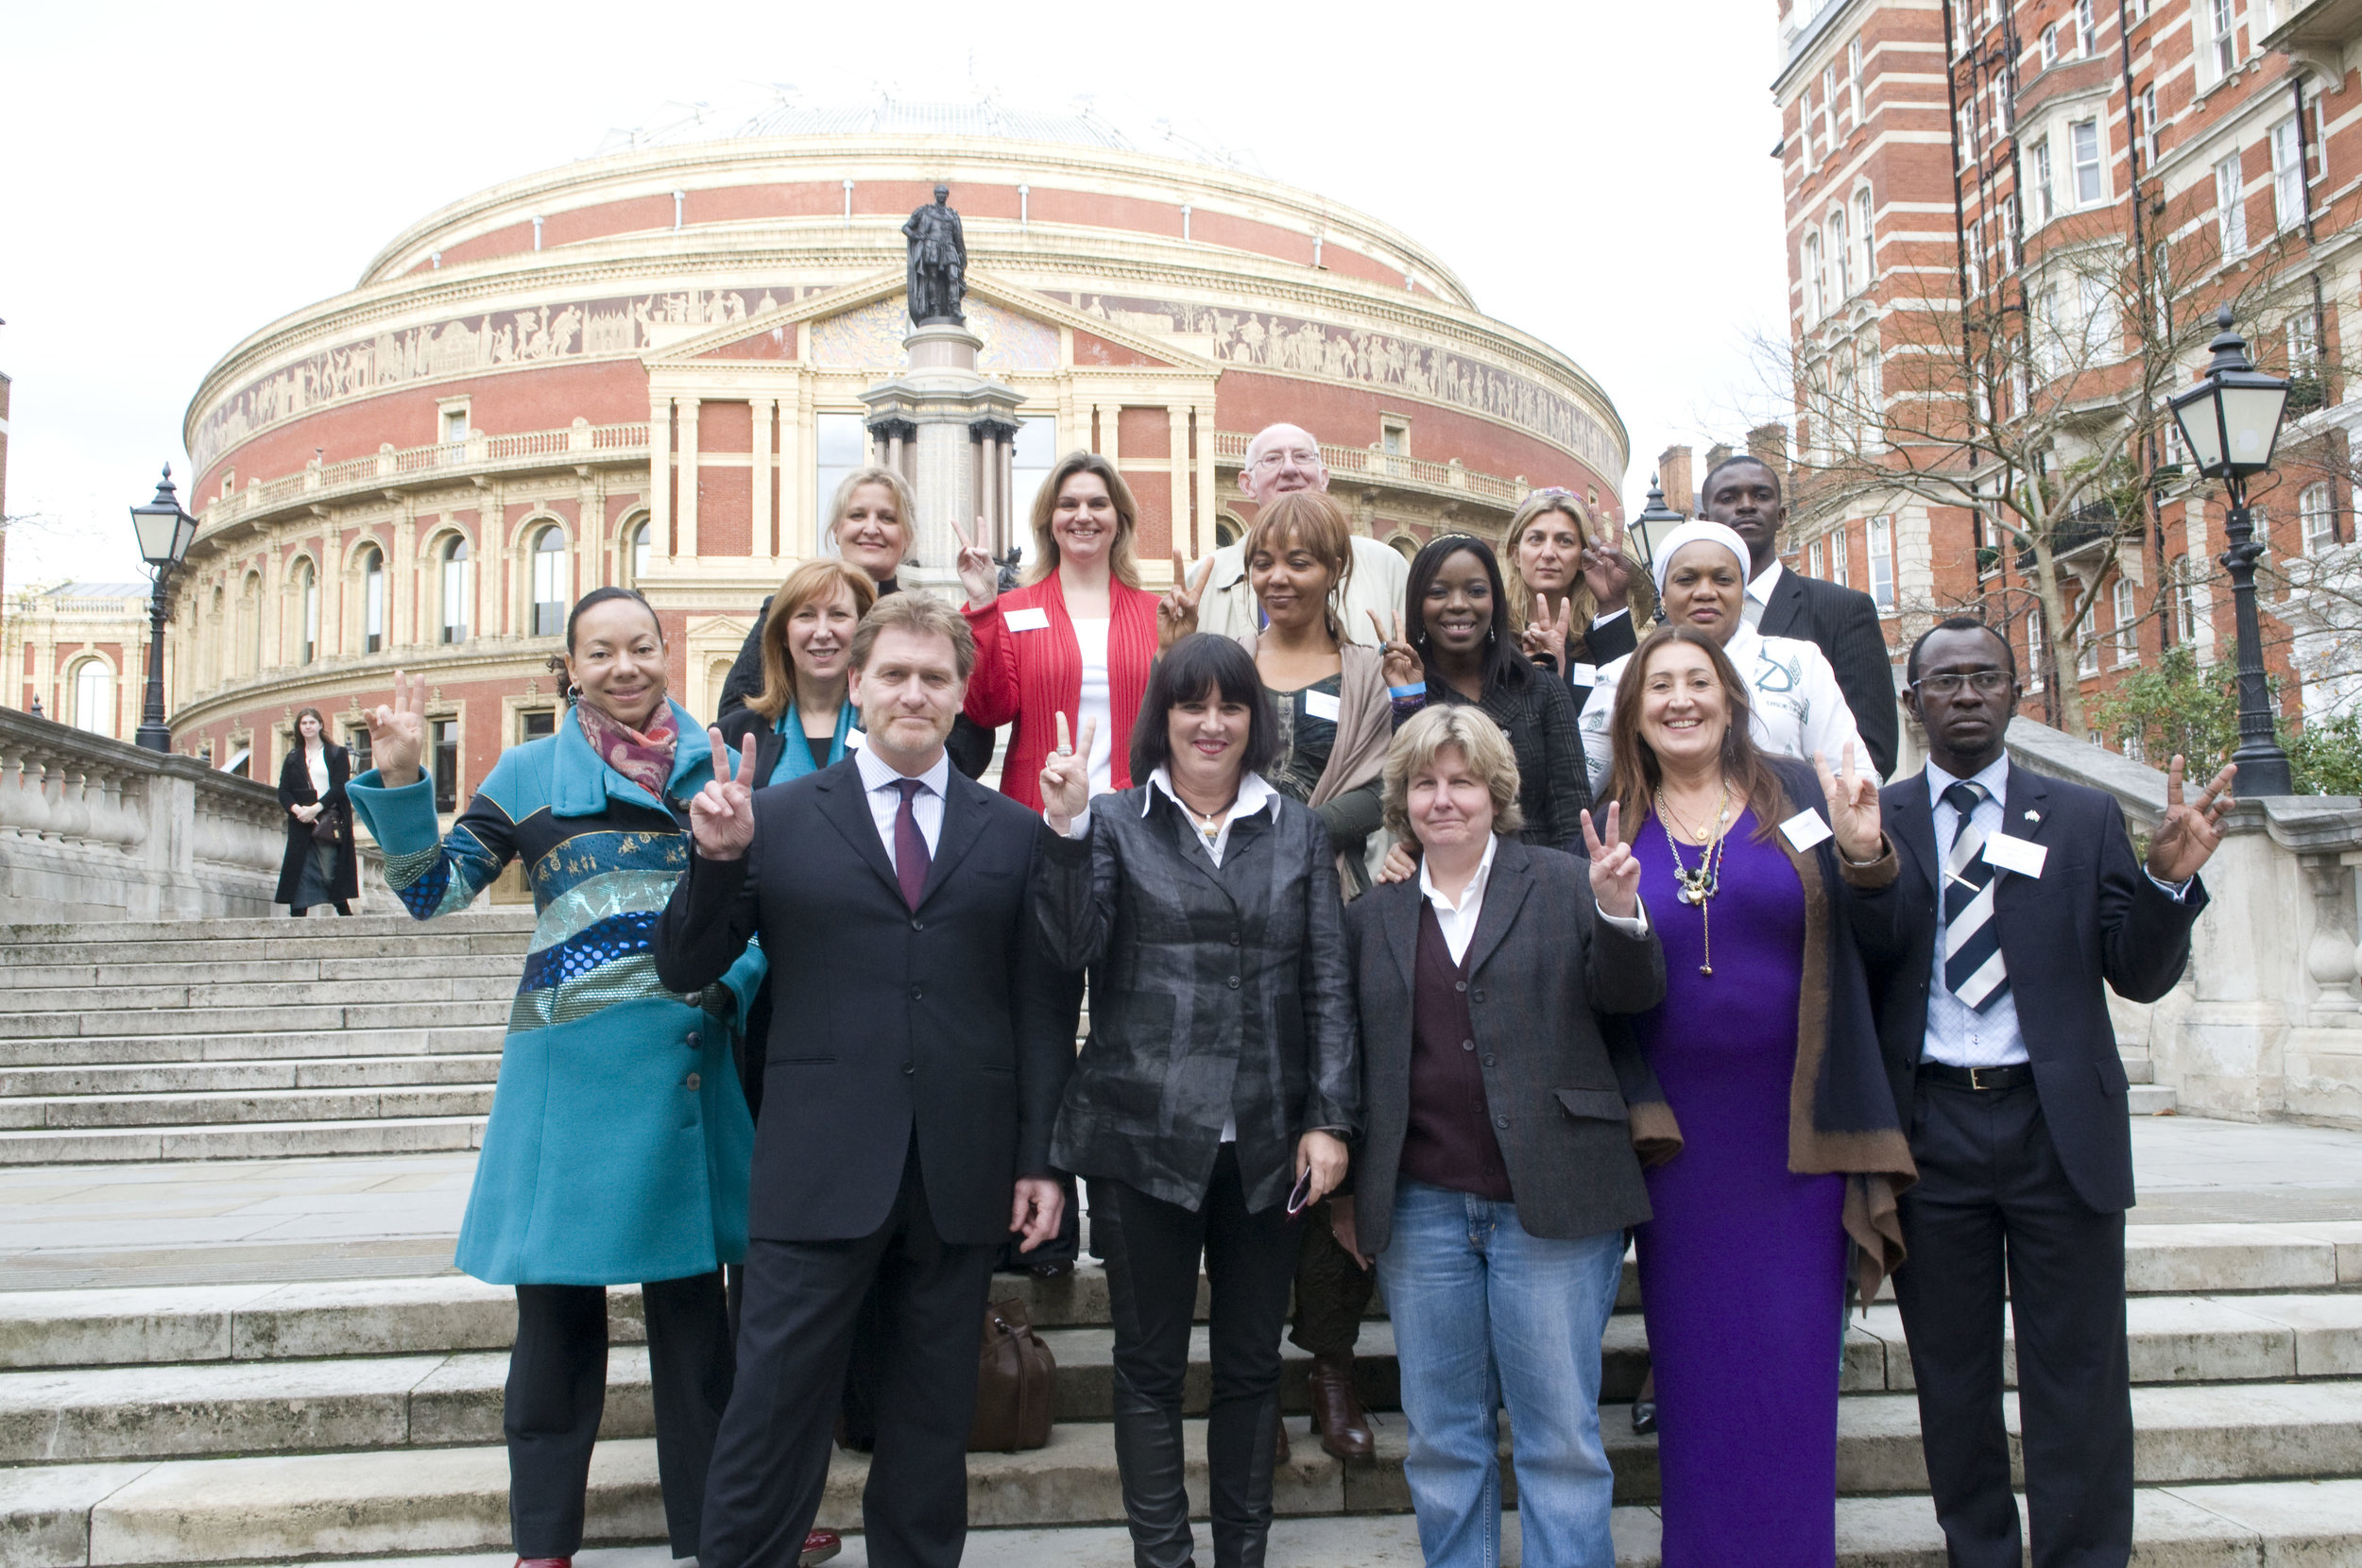 Lynne organises the Press Conference of a Hundred Years of Sexual Violence Against Women of the DRC, at the Royal Albert Hall 2009. With Eve Ensler, Sandi Toksvig, Baroness Oona King and Christine Schuler Deschryver, Director of City of Joy DRC